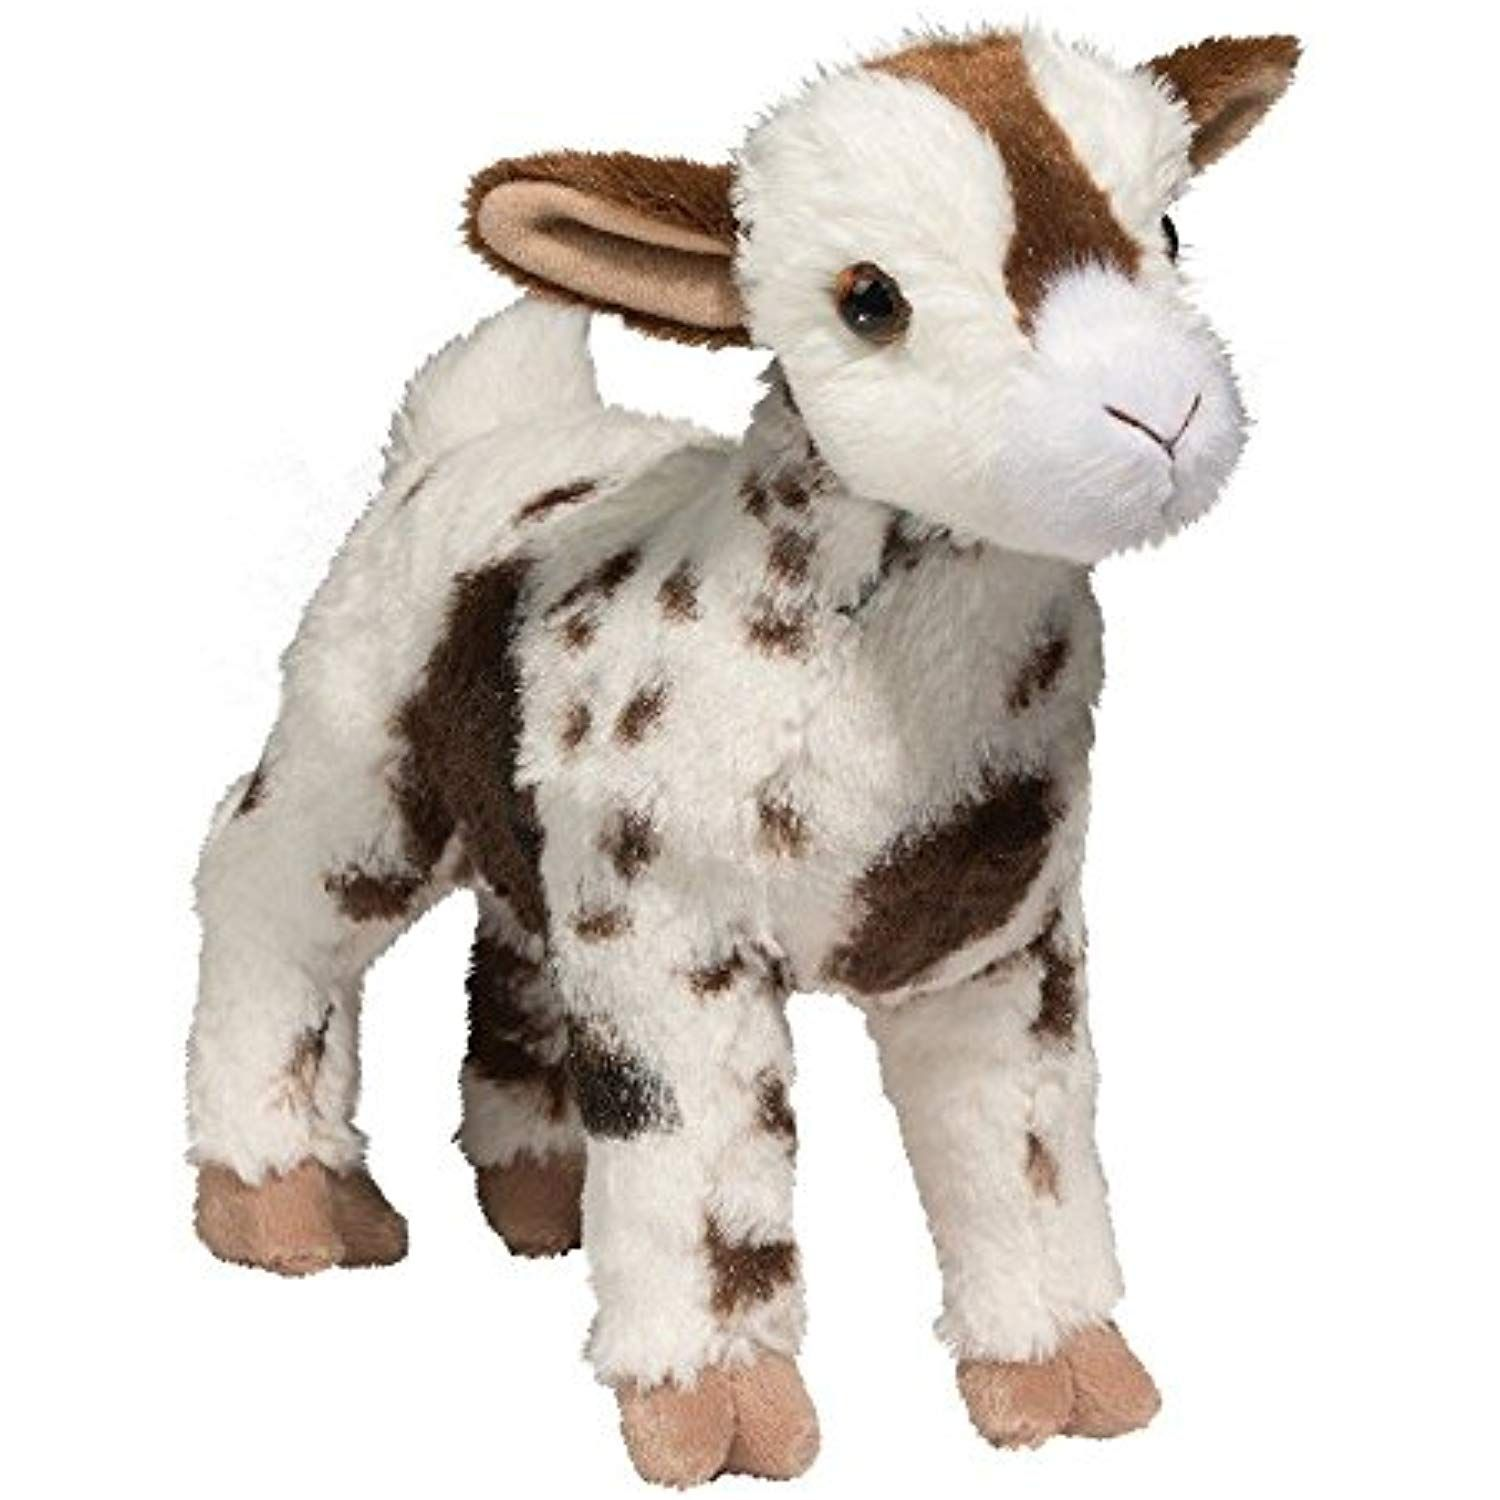 Predownload: Gerti Goat Be Sure To Check Out This Awesome Product This Is An Affiliate Link Goat Stuffed Animal Cute Stuffed Animals Pet Toys [ 1500 x 1500 Pixel ]